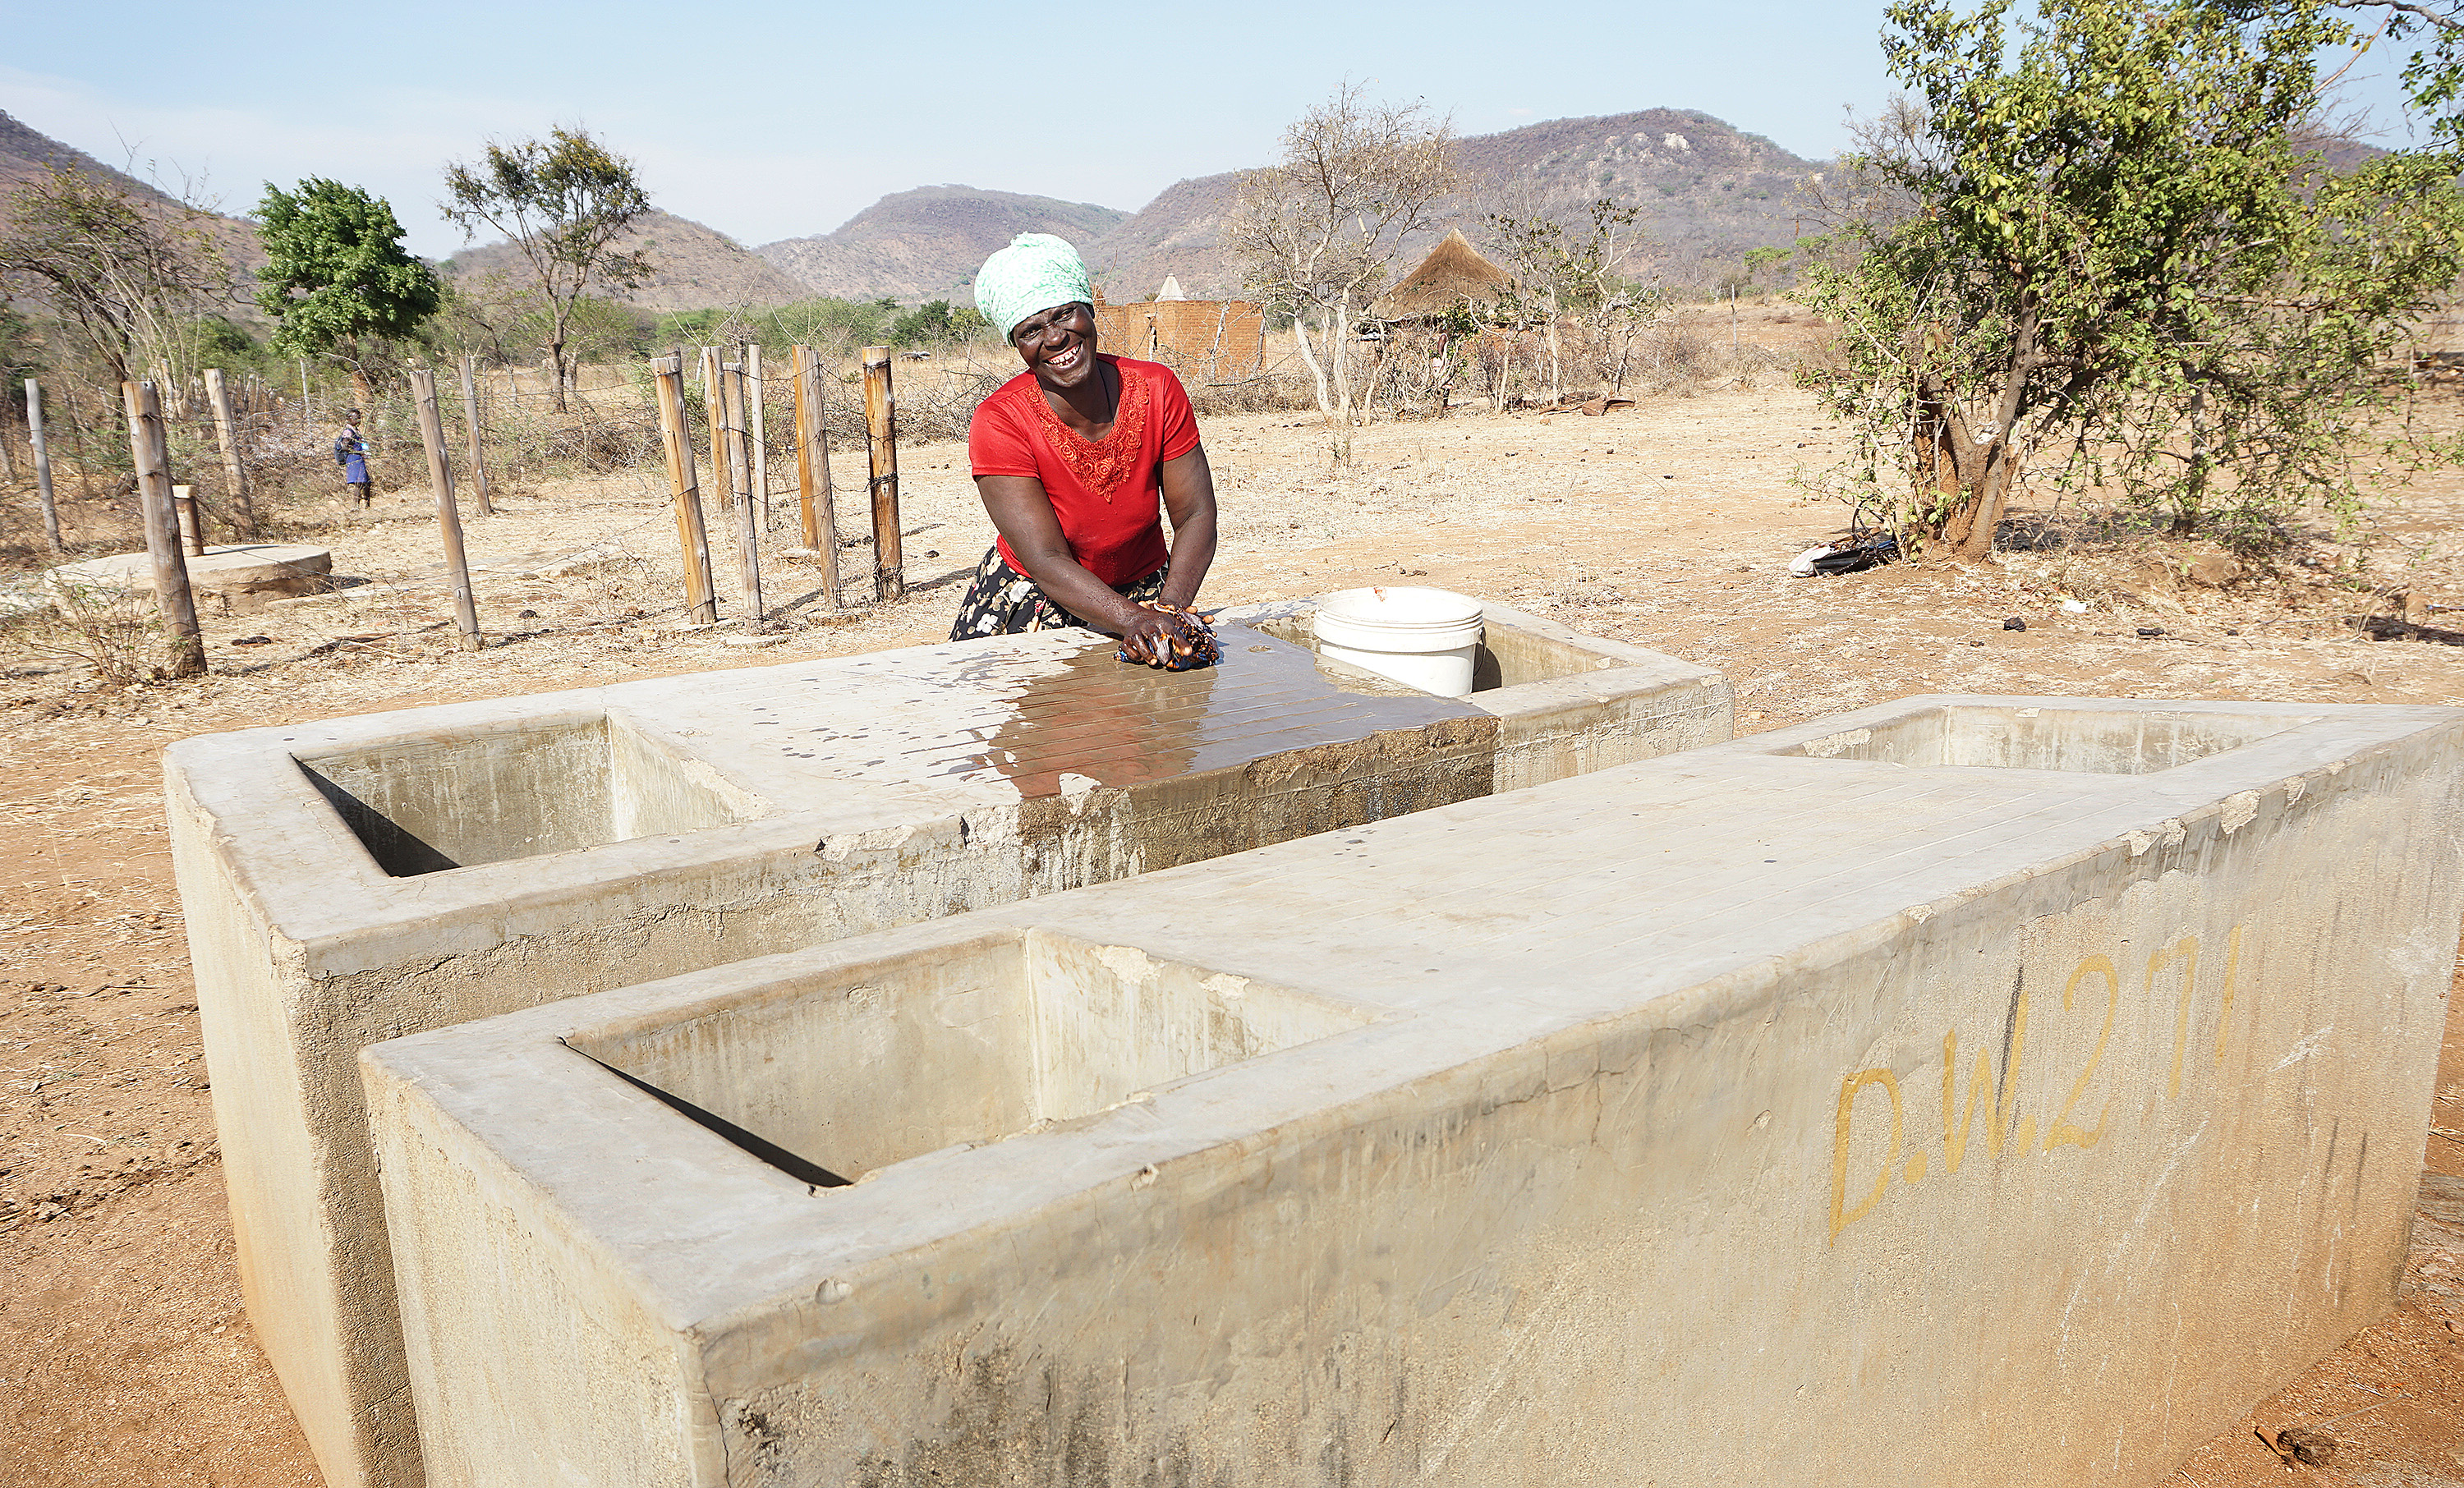 Maria Mandipaza tries out the new laundry basin donated by United Methodists from Norway. Photo by Kudzai Chingwe, UMNS.